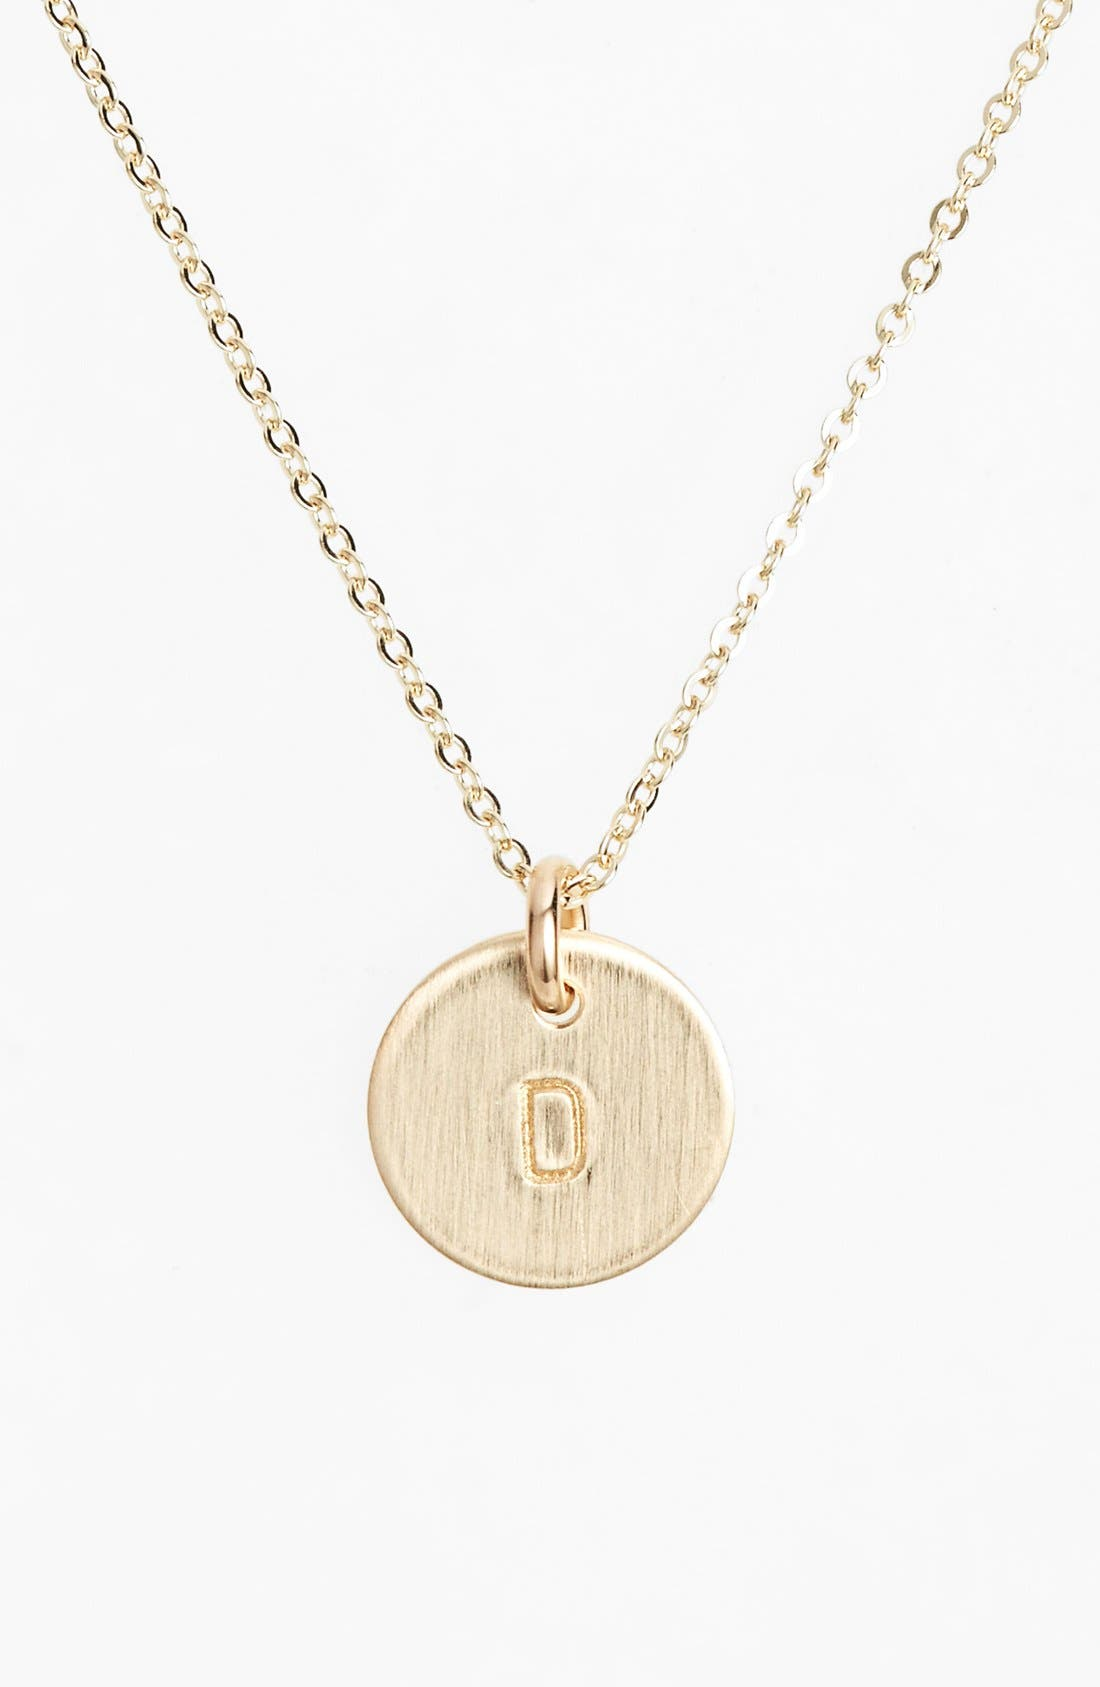 Alternate Image 1 Selected - Nashelle 14k-Gold Fill Initial Mini Circle Necklace